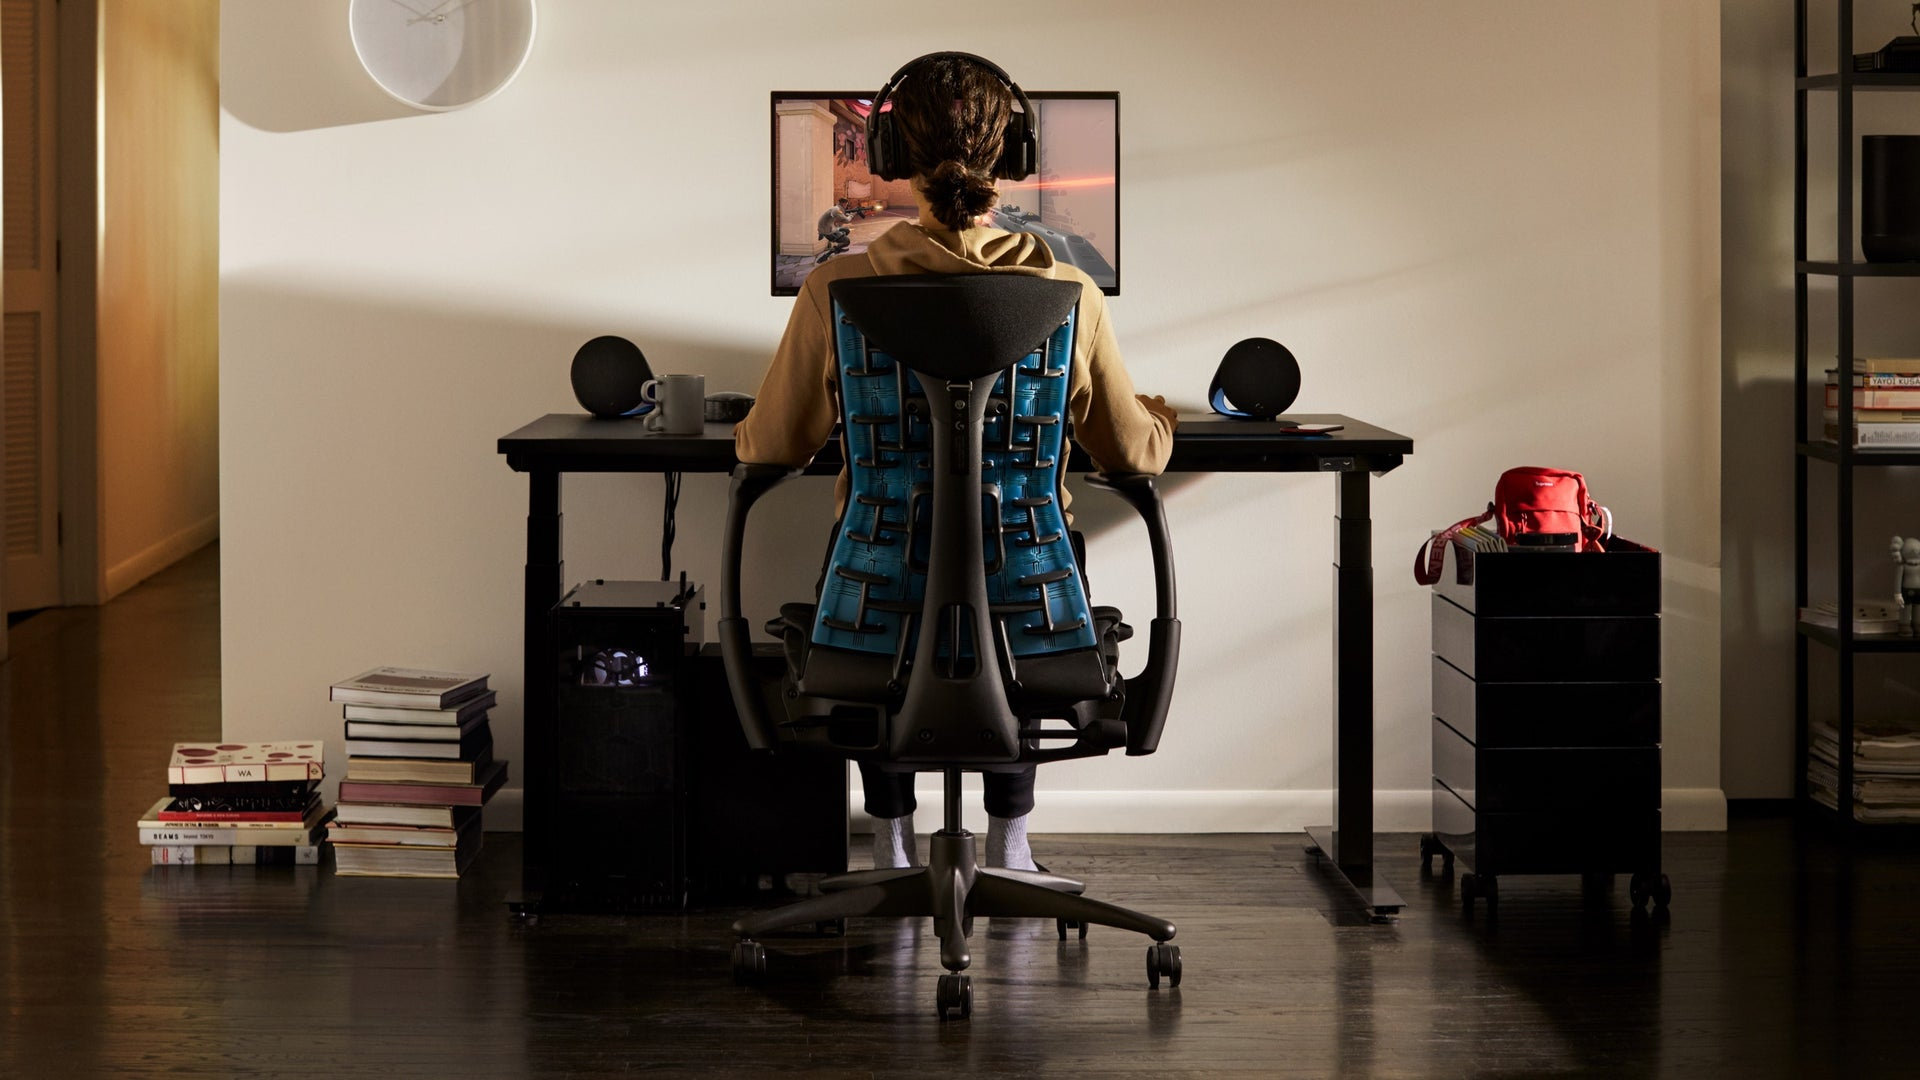 A person sits in the Embody Gaming Chair and looks at a monitor attached to the Ollin Monitor Arm, which sits on top of the gaming desk in a residential setting.